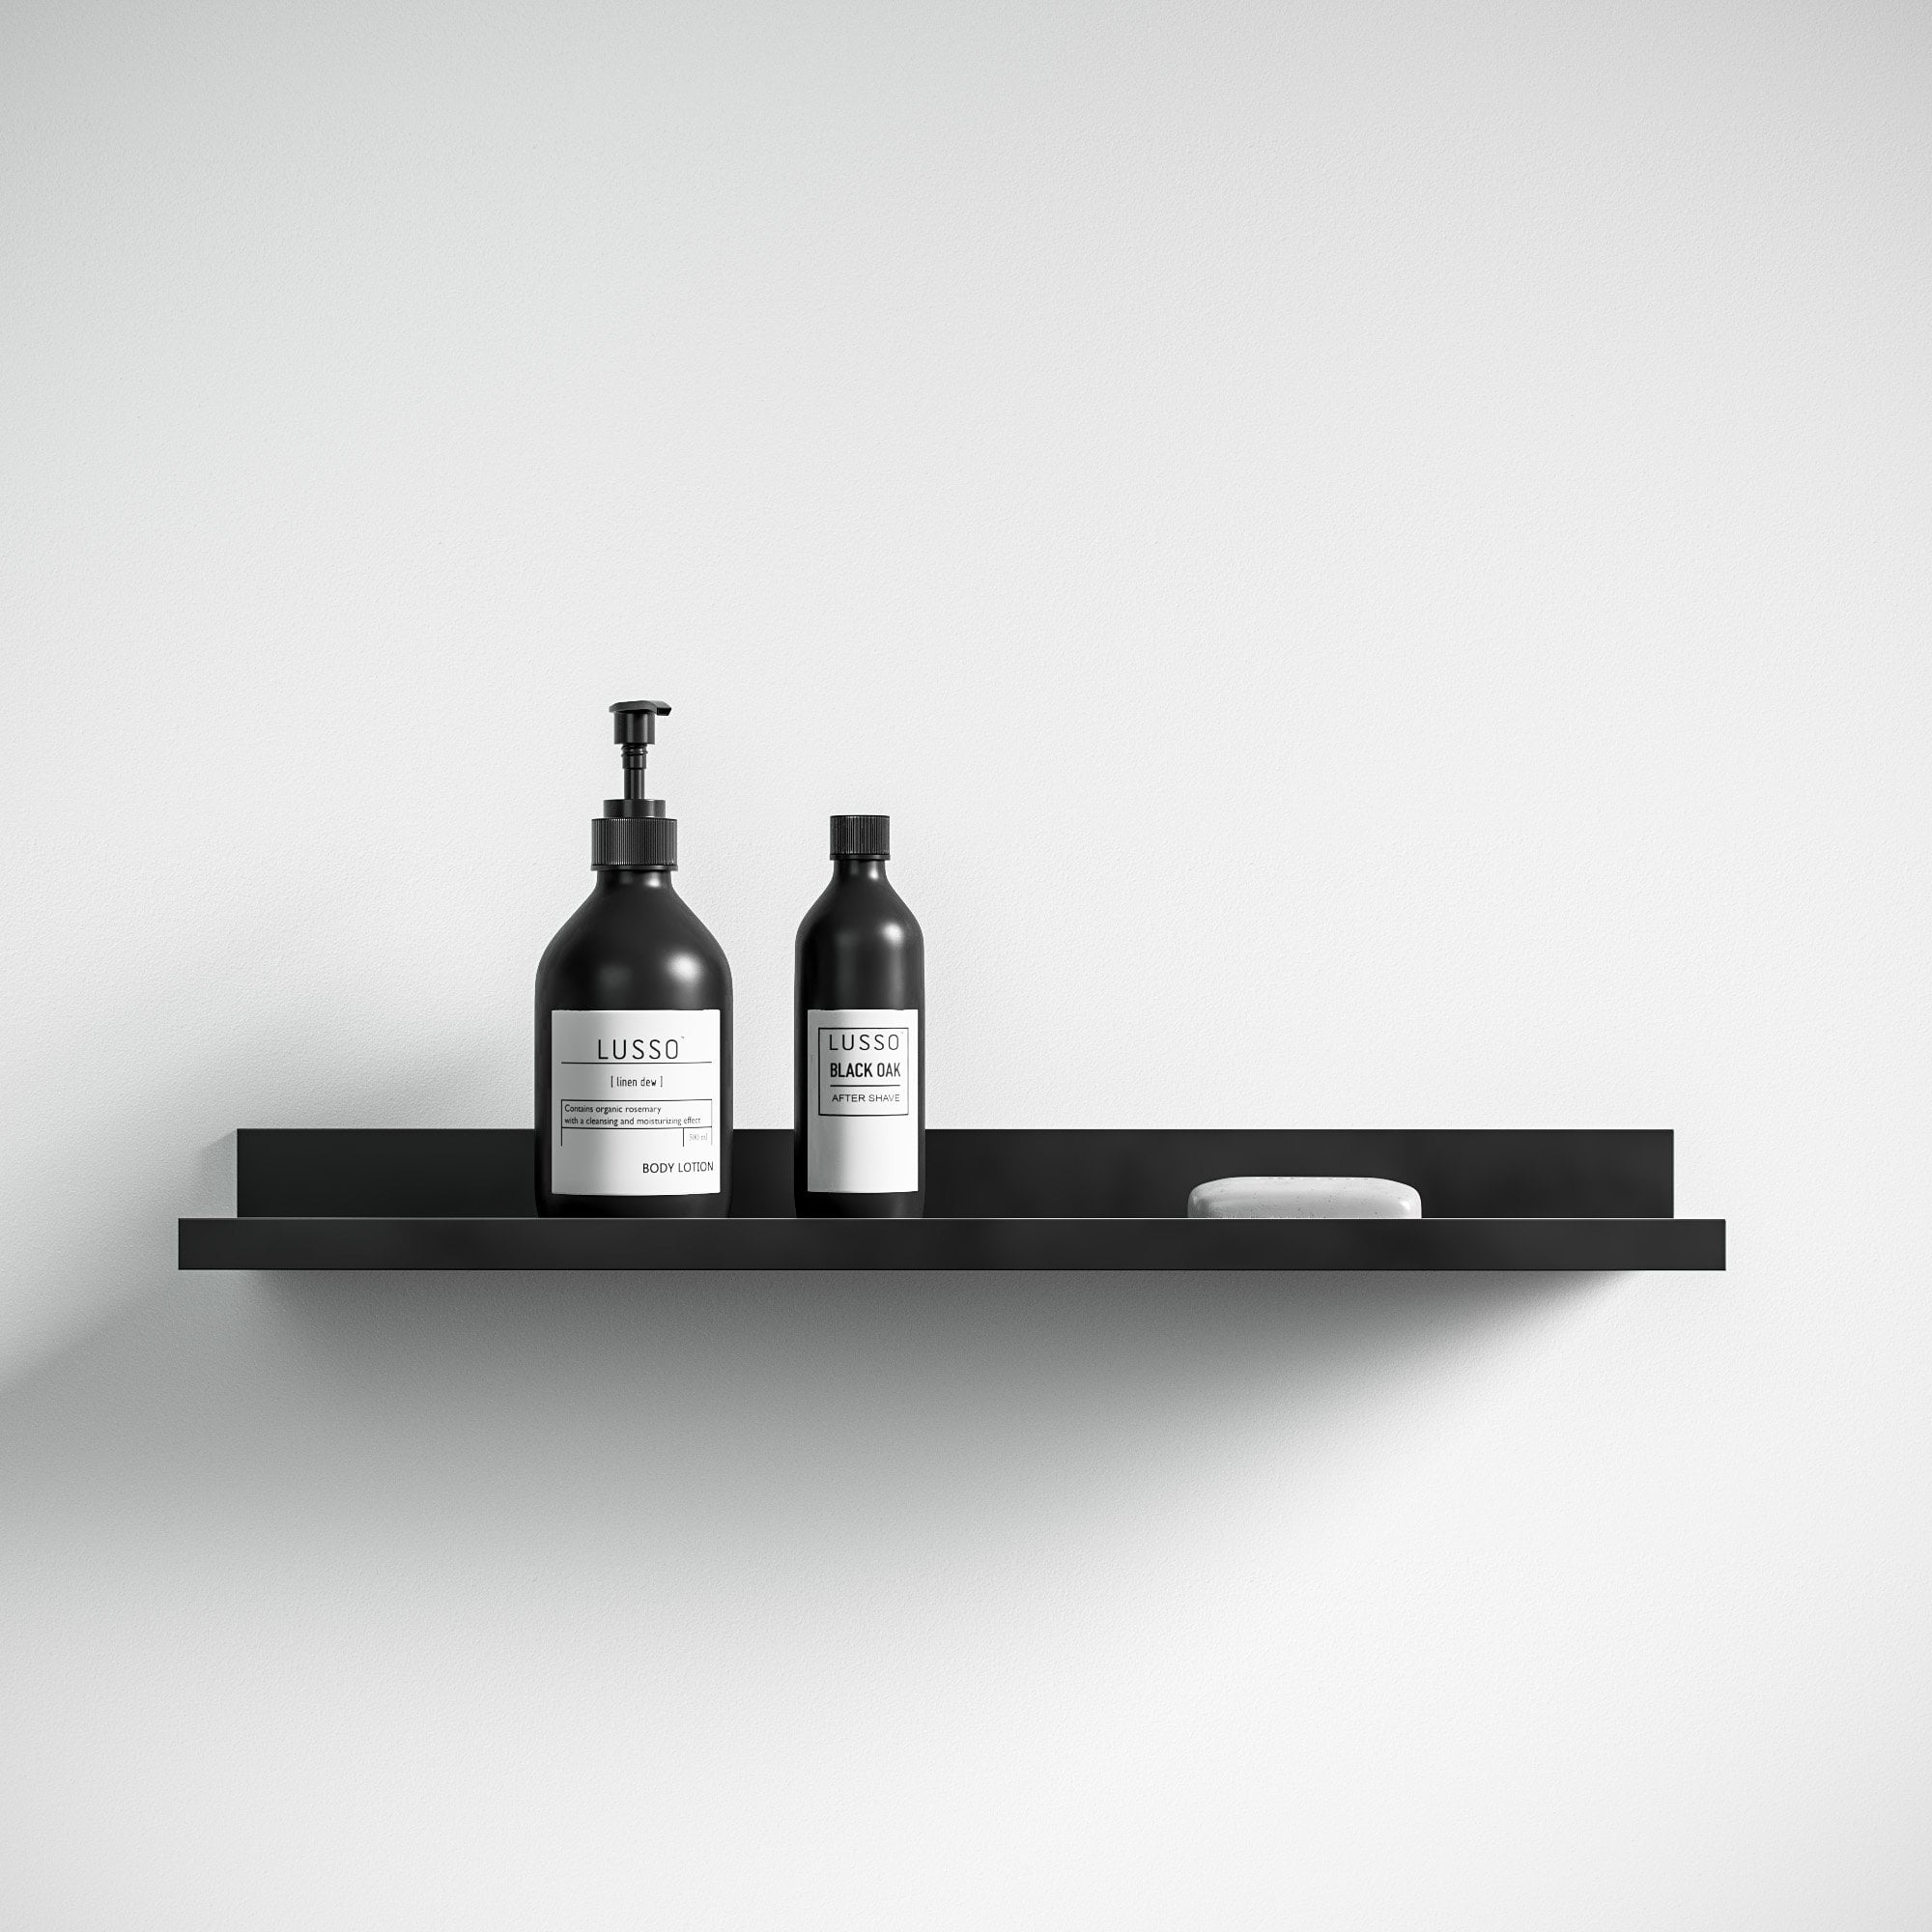 lusso designo floating shelf matte black accessories zoom shelves french cleat power tool storage metal accordion coat rack large desk white cube organizer ikea inch wide diy